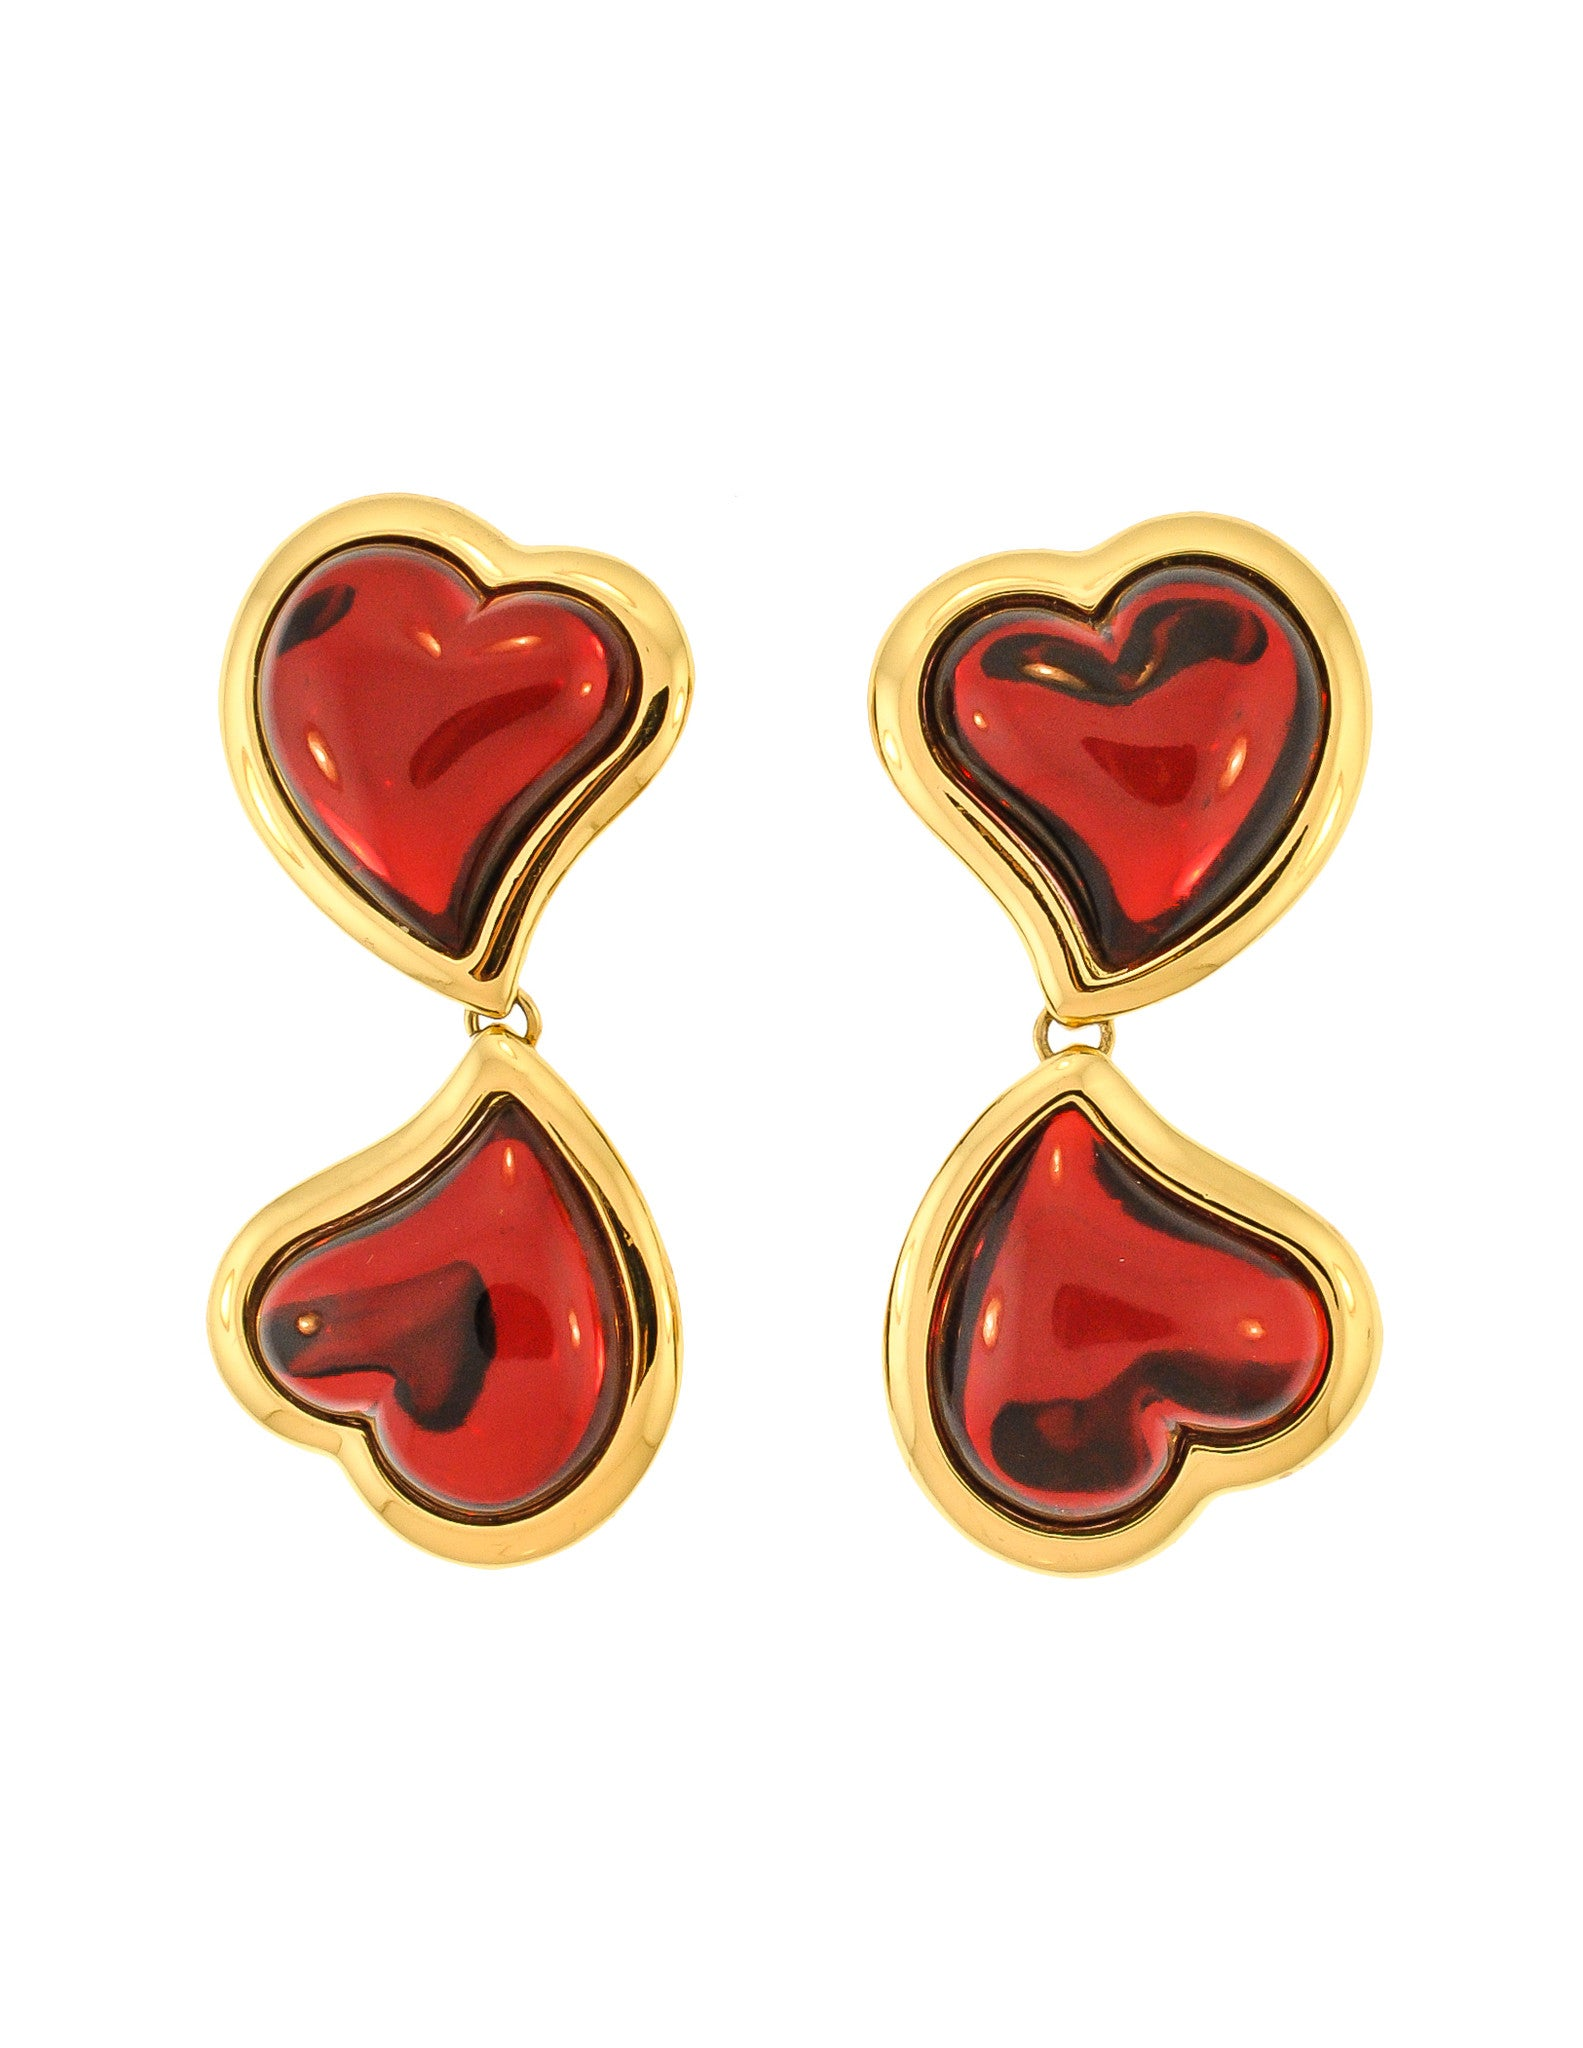 YSL Vintage Double Red Heart Earrings - Amarcord Vintage Fashion  - 1